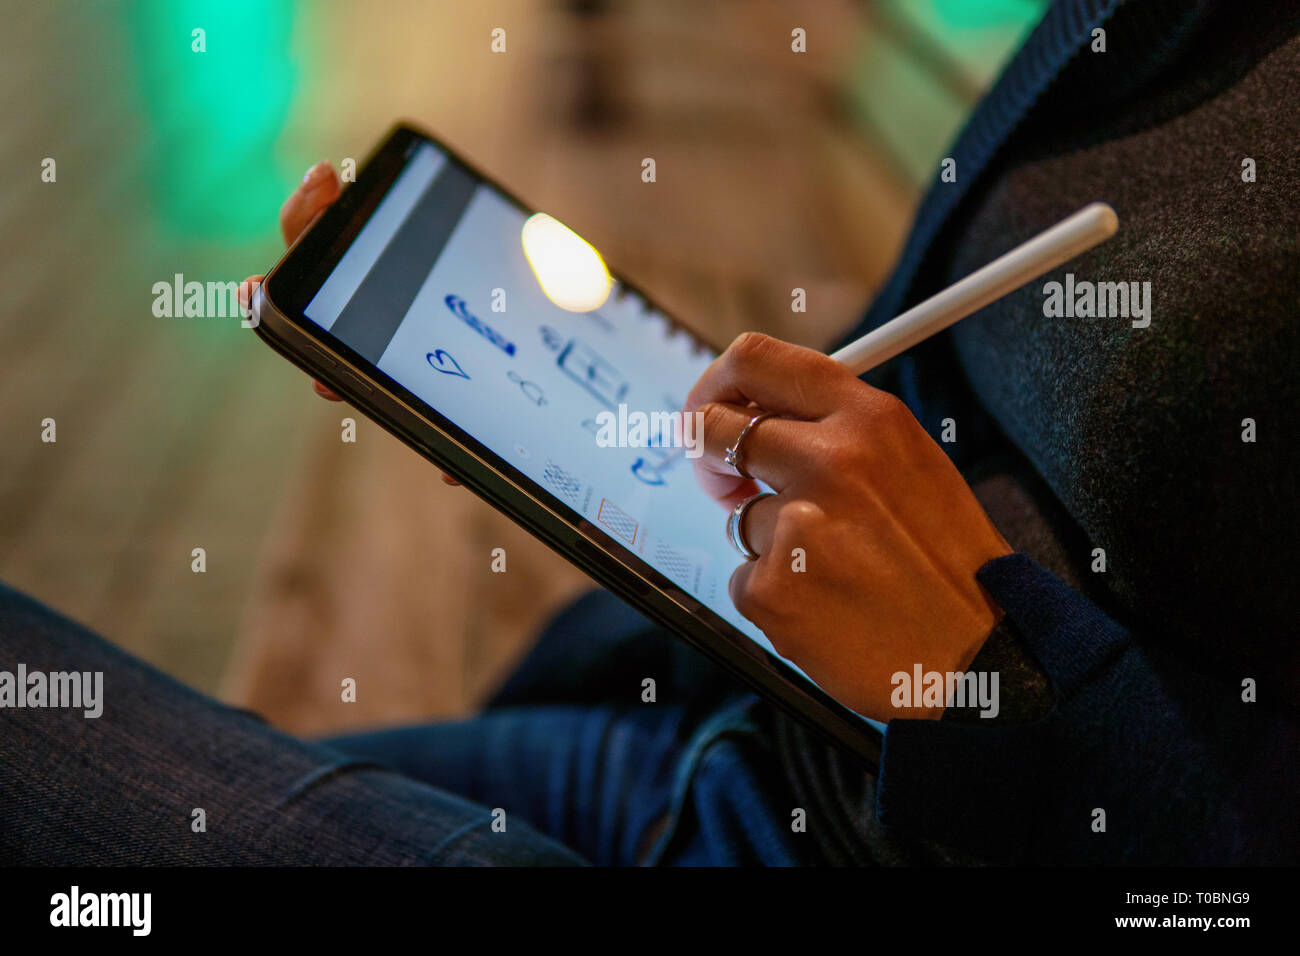 woman drawing on digital tablet with stylus pencil. Stock Photo